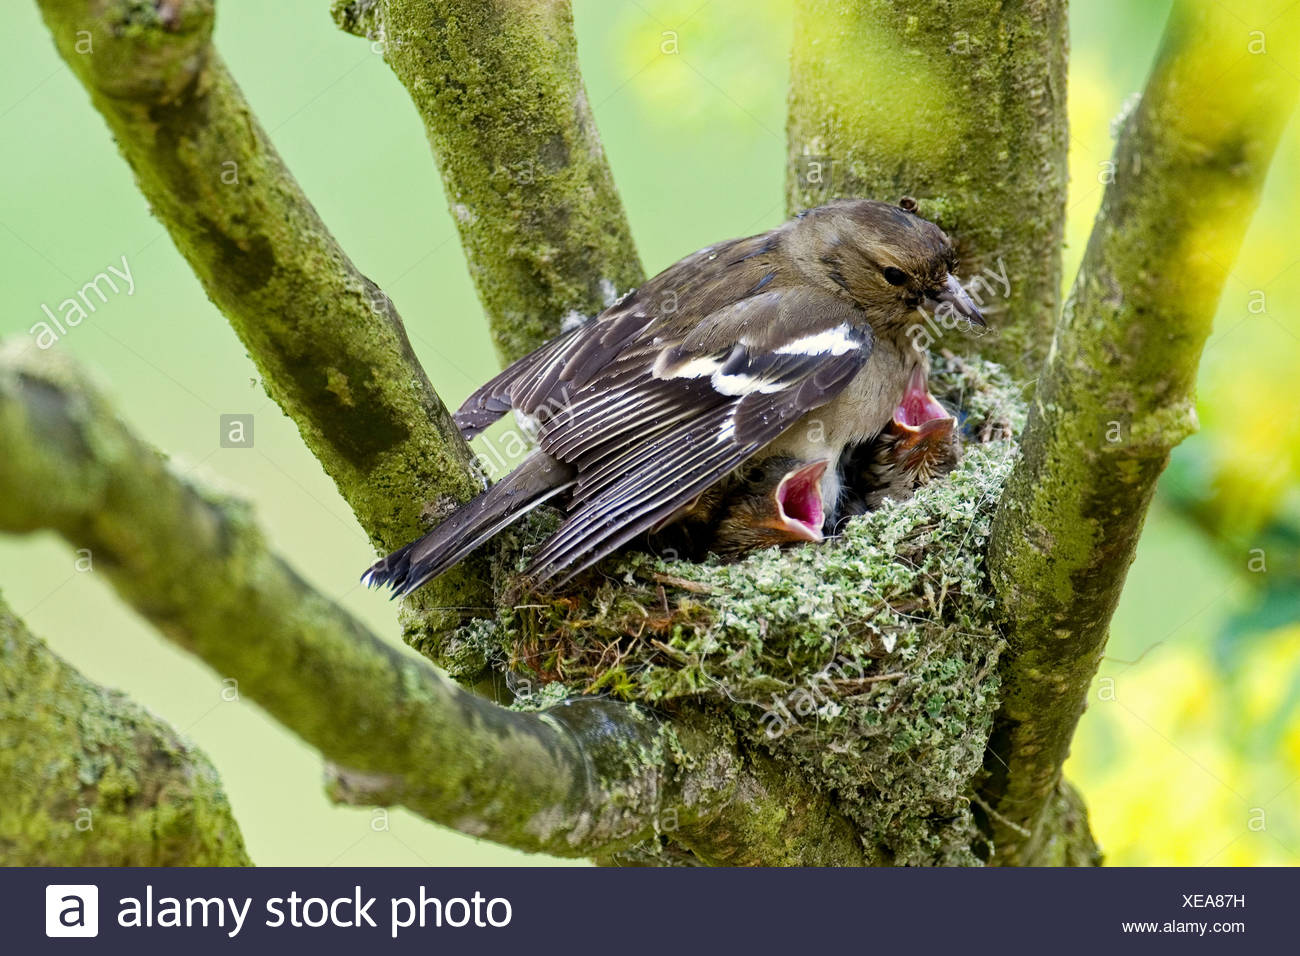 chaffinch (female) with fledglings in nest / Fringilla coelebs - Stock Image